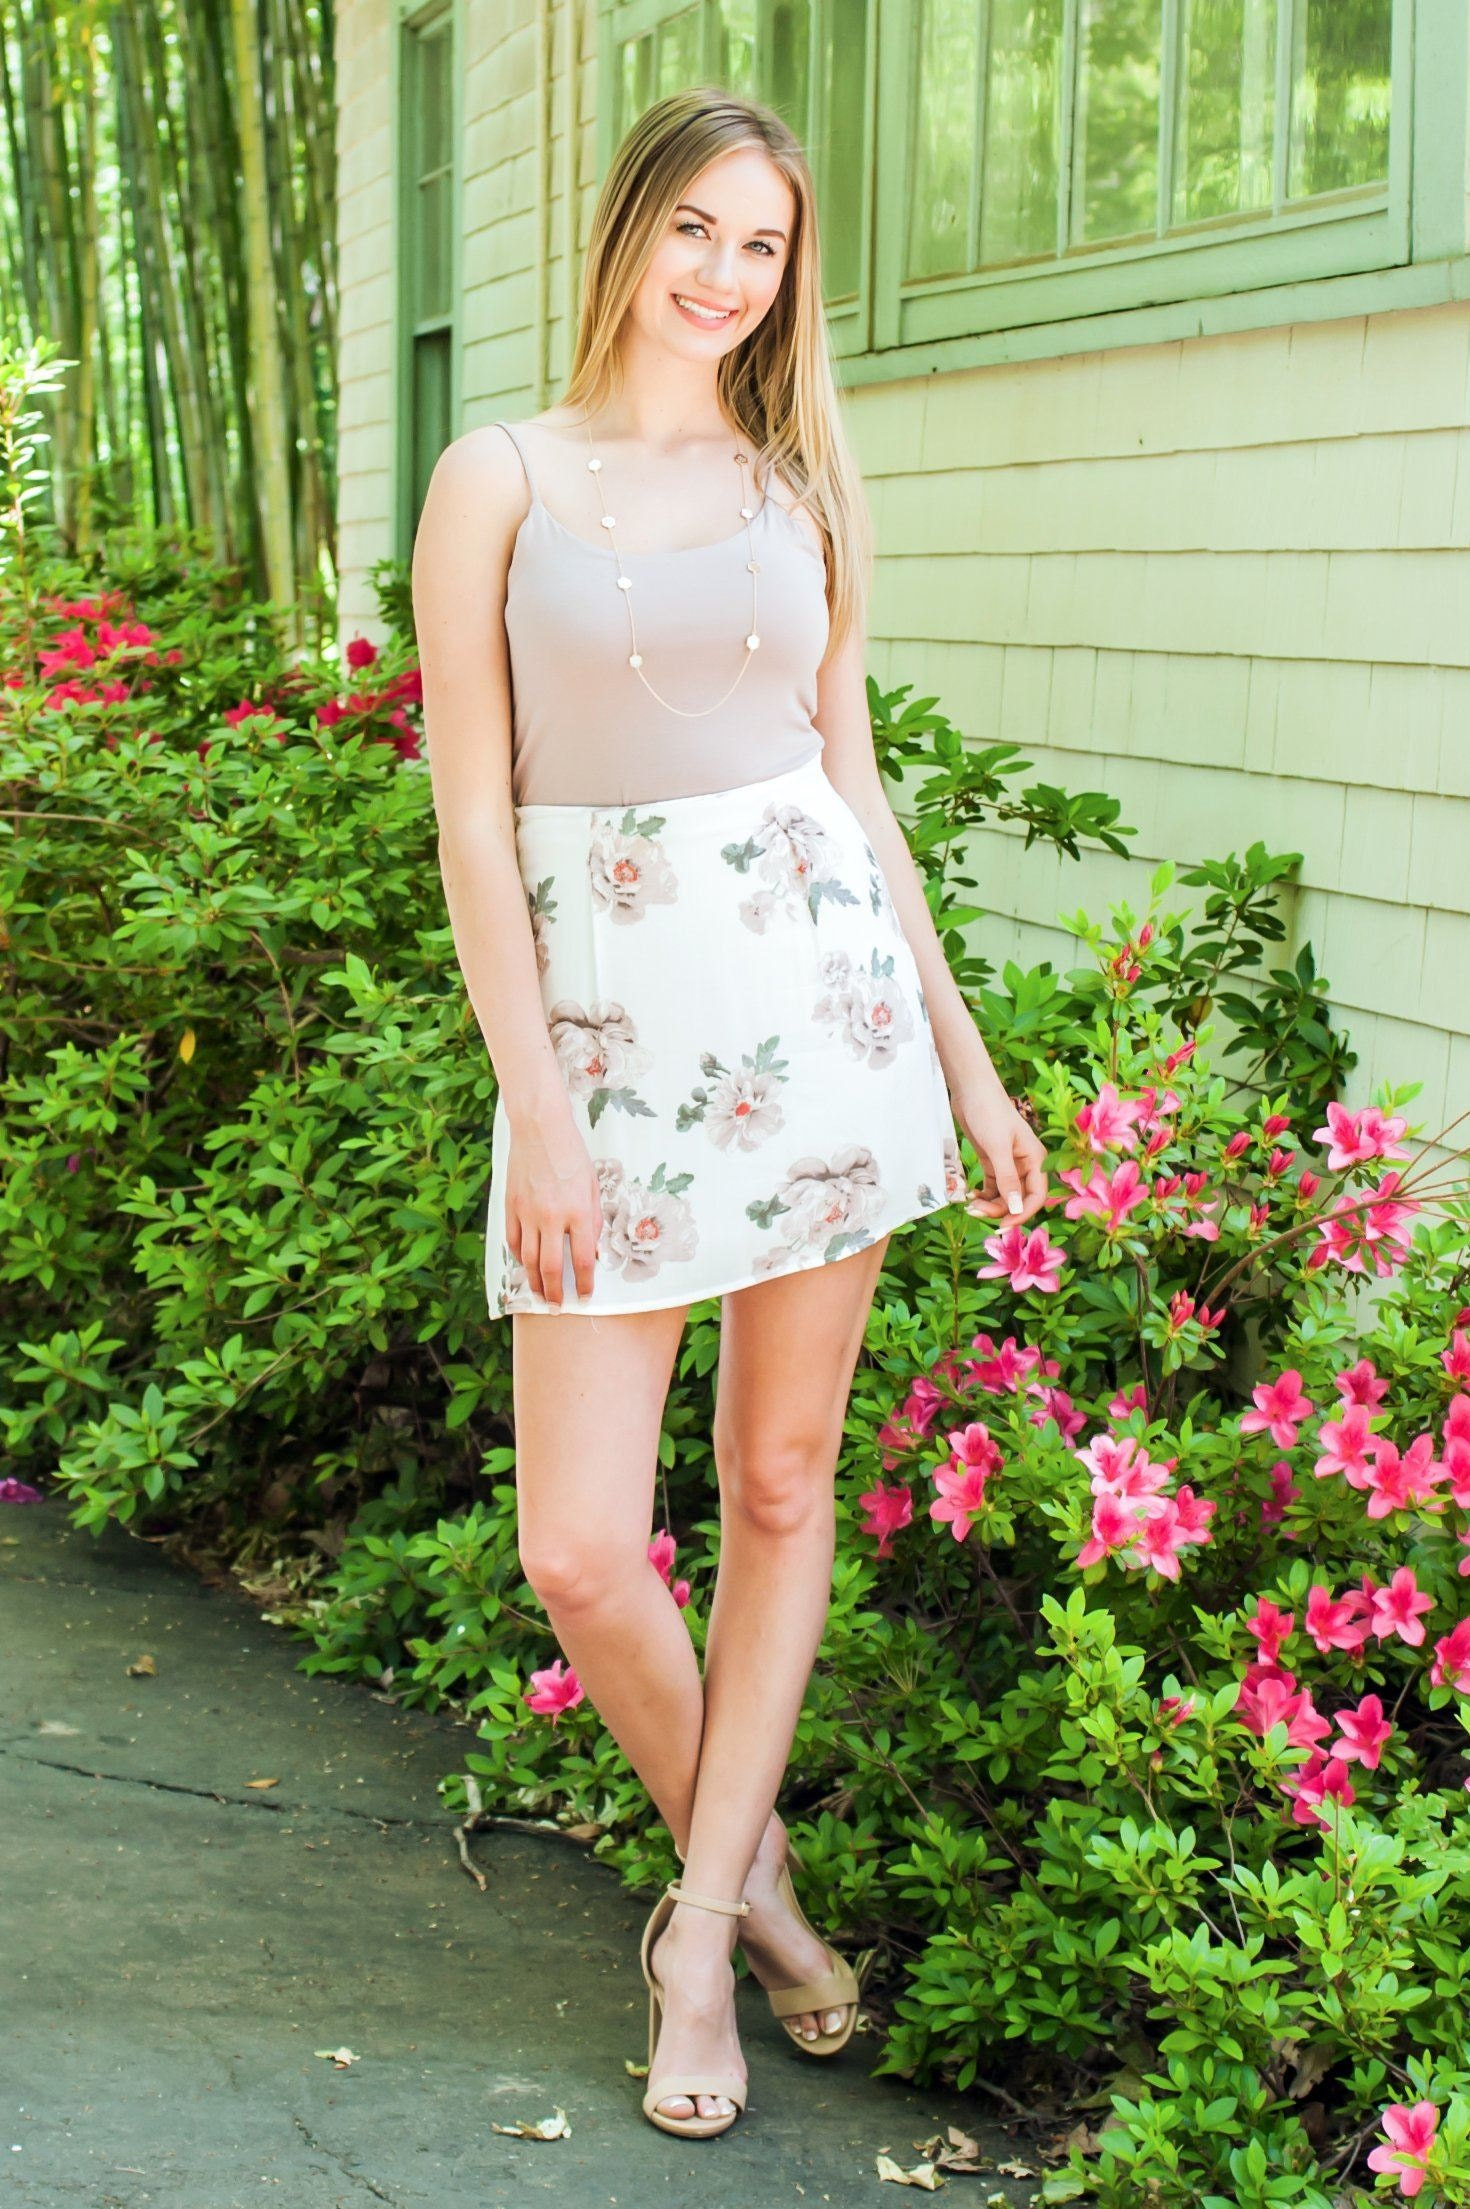 white short skirt on woman for Spring with flowers